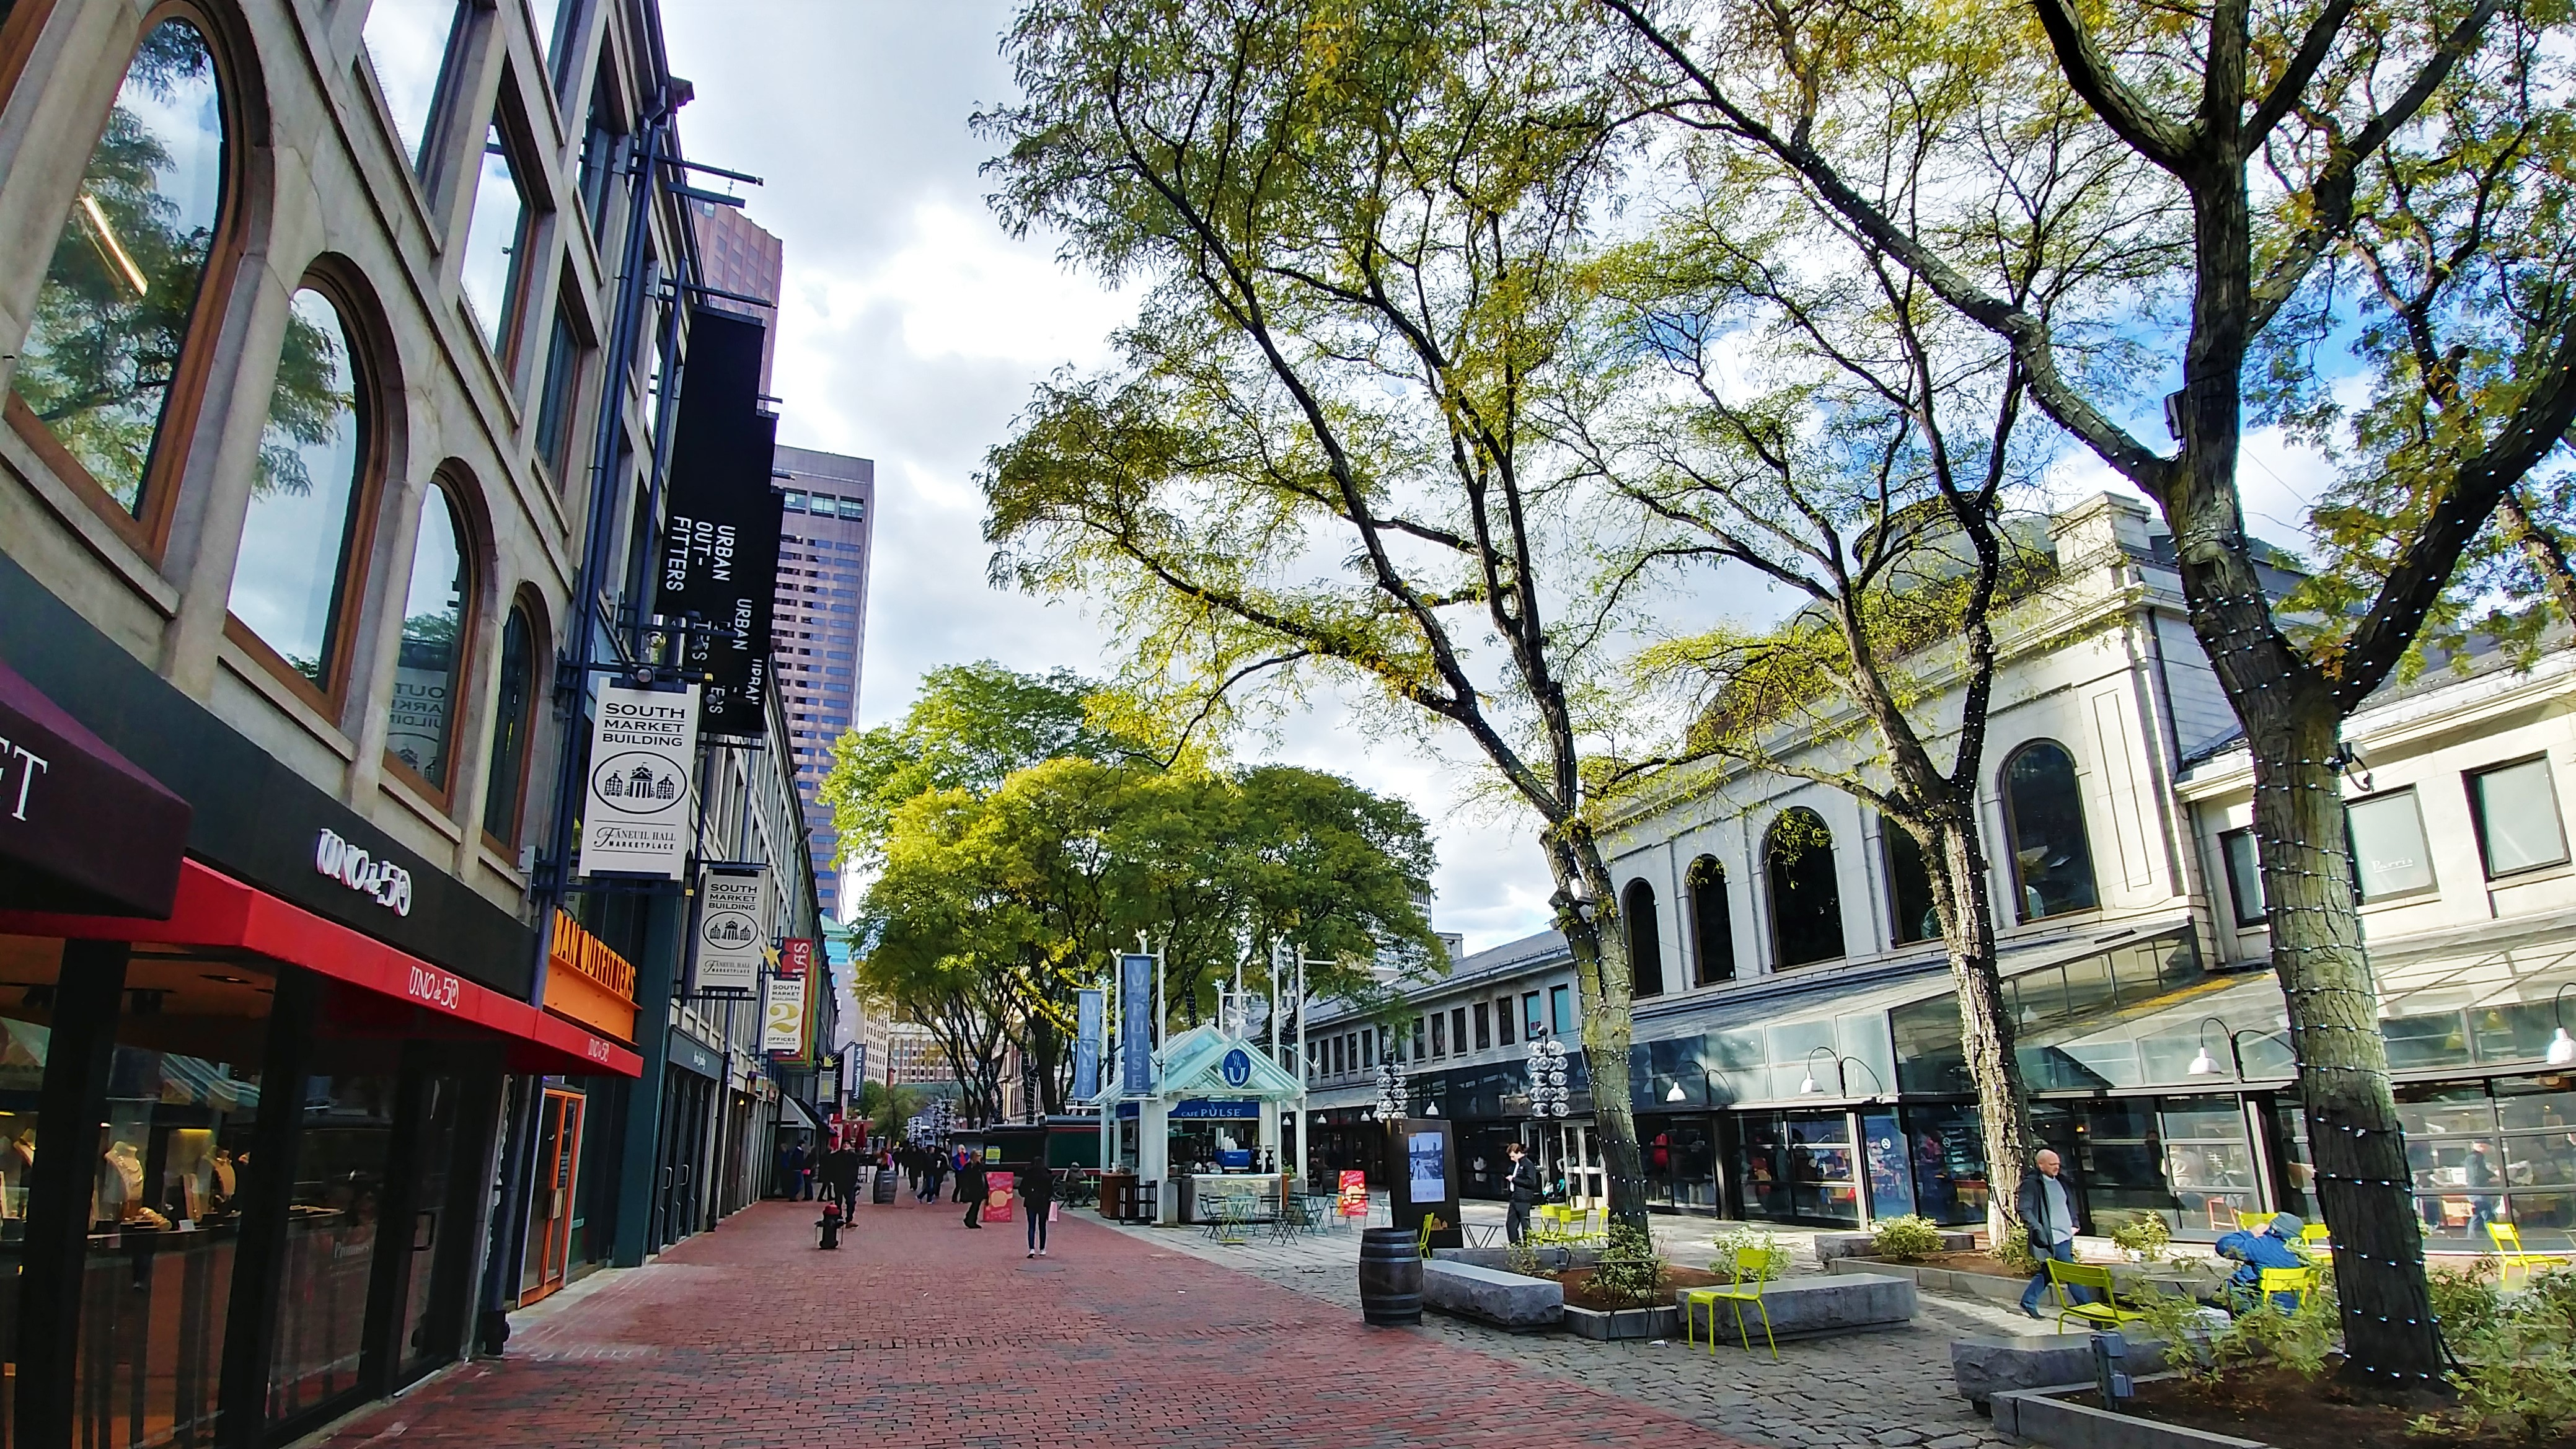 quincy market freedom trail boston que voir usa voyage etats-unis arpenter le chemin